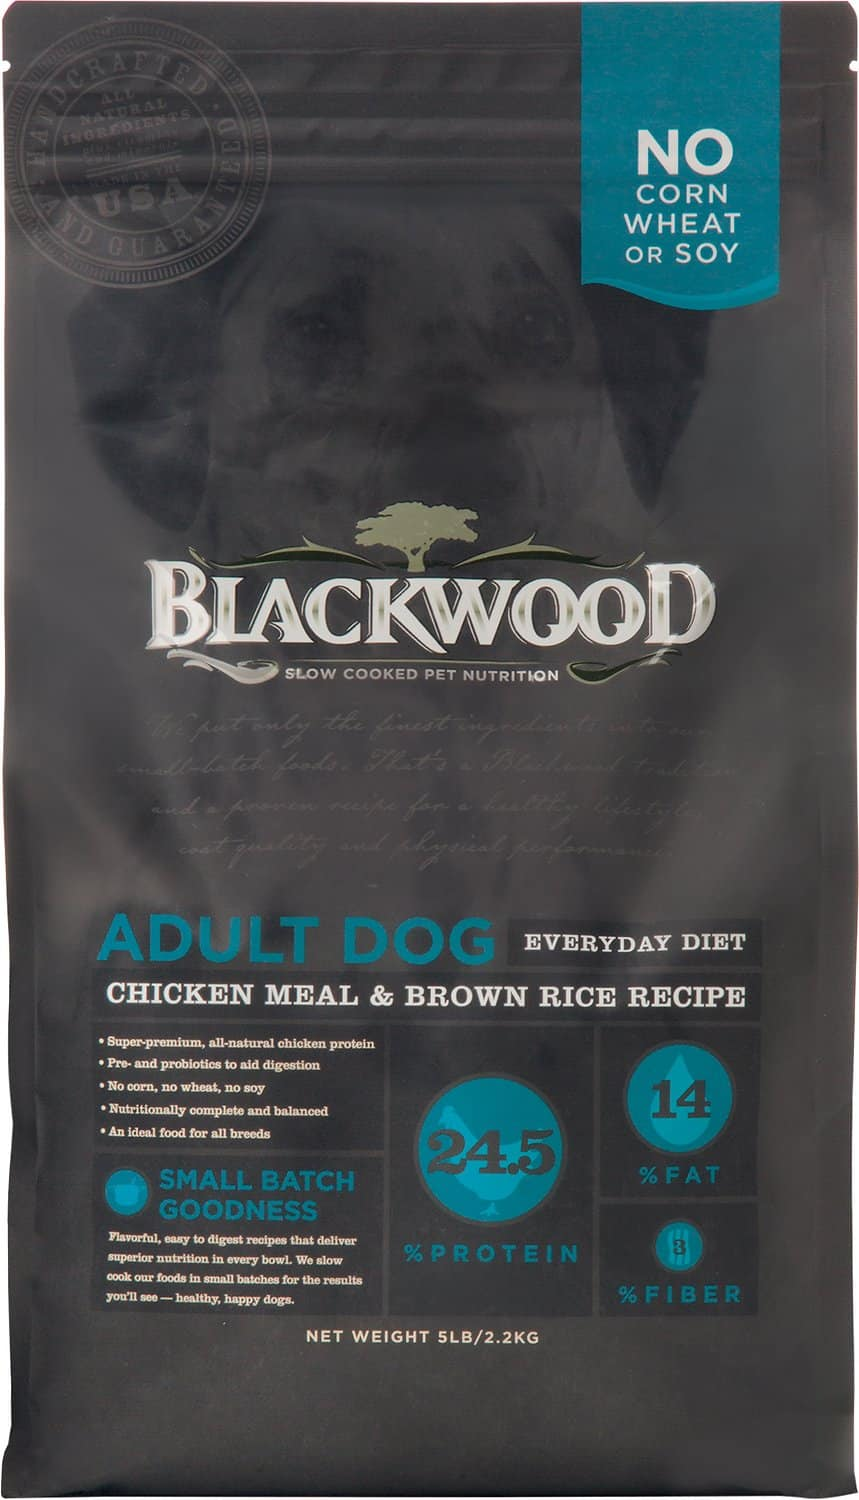 New Chewy Autoship Customers: 60-Lbs Blackwood Chicken Meal & Rice Recipe Everyday Diet Adult Dry Dog Food $38.20 ($0.64 per Lb) & More + Free Shipping